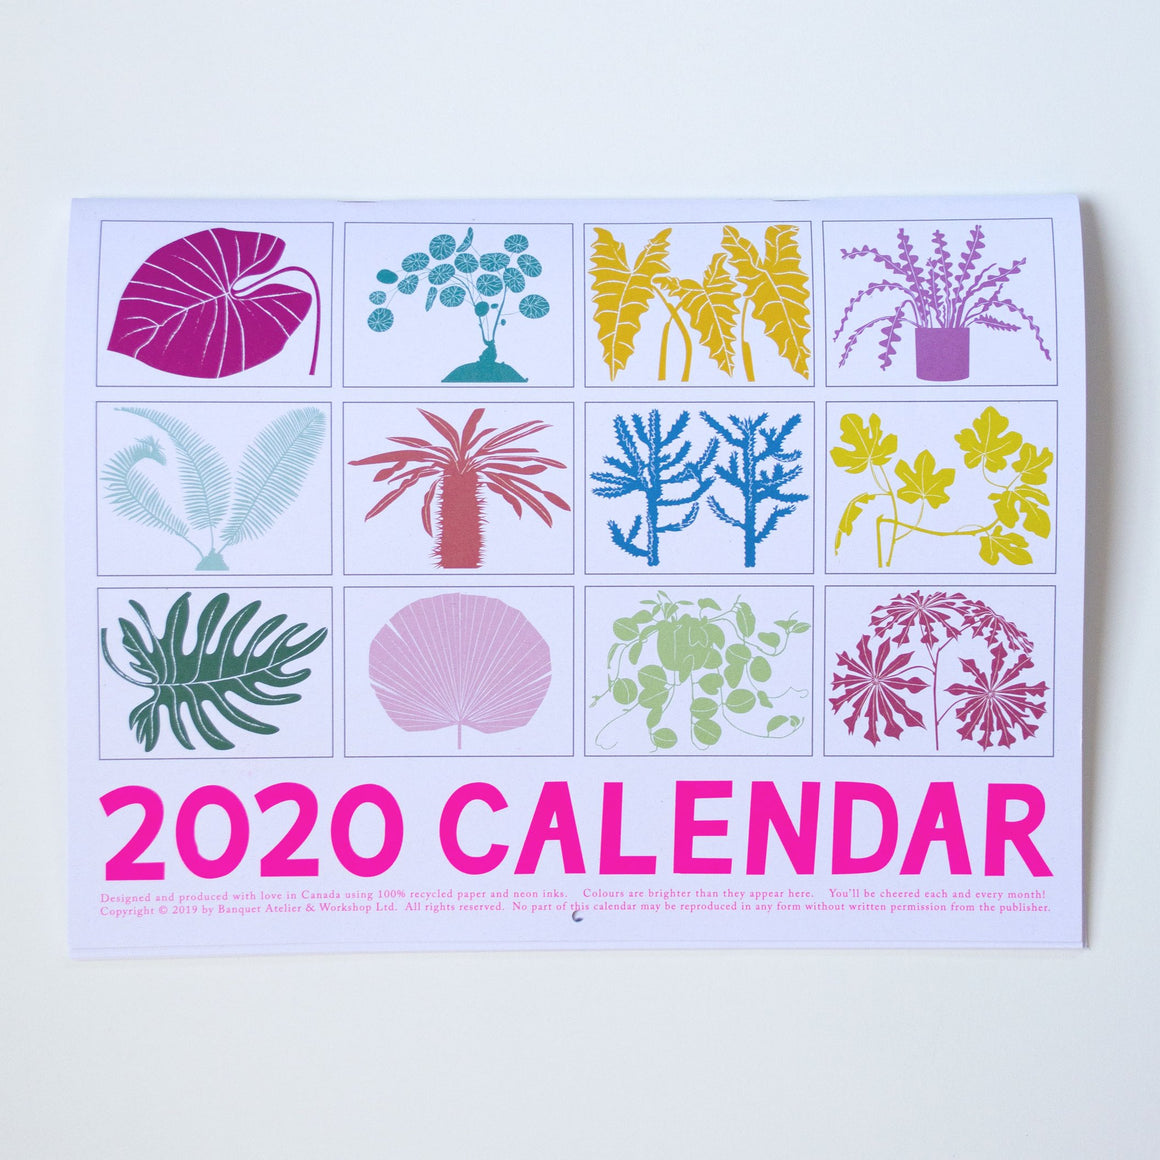 2020 Houseplants Calendar